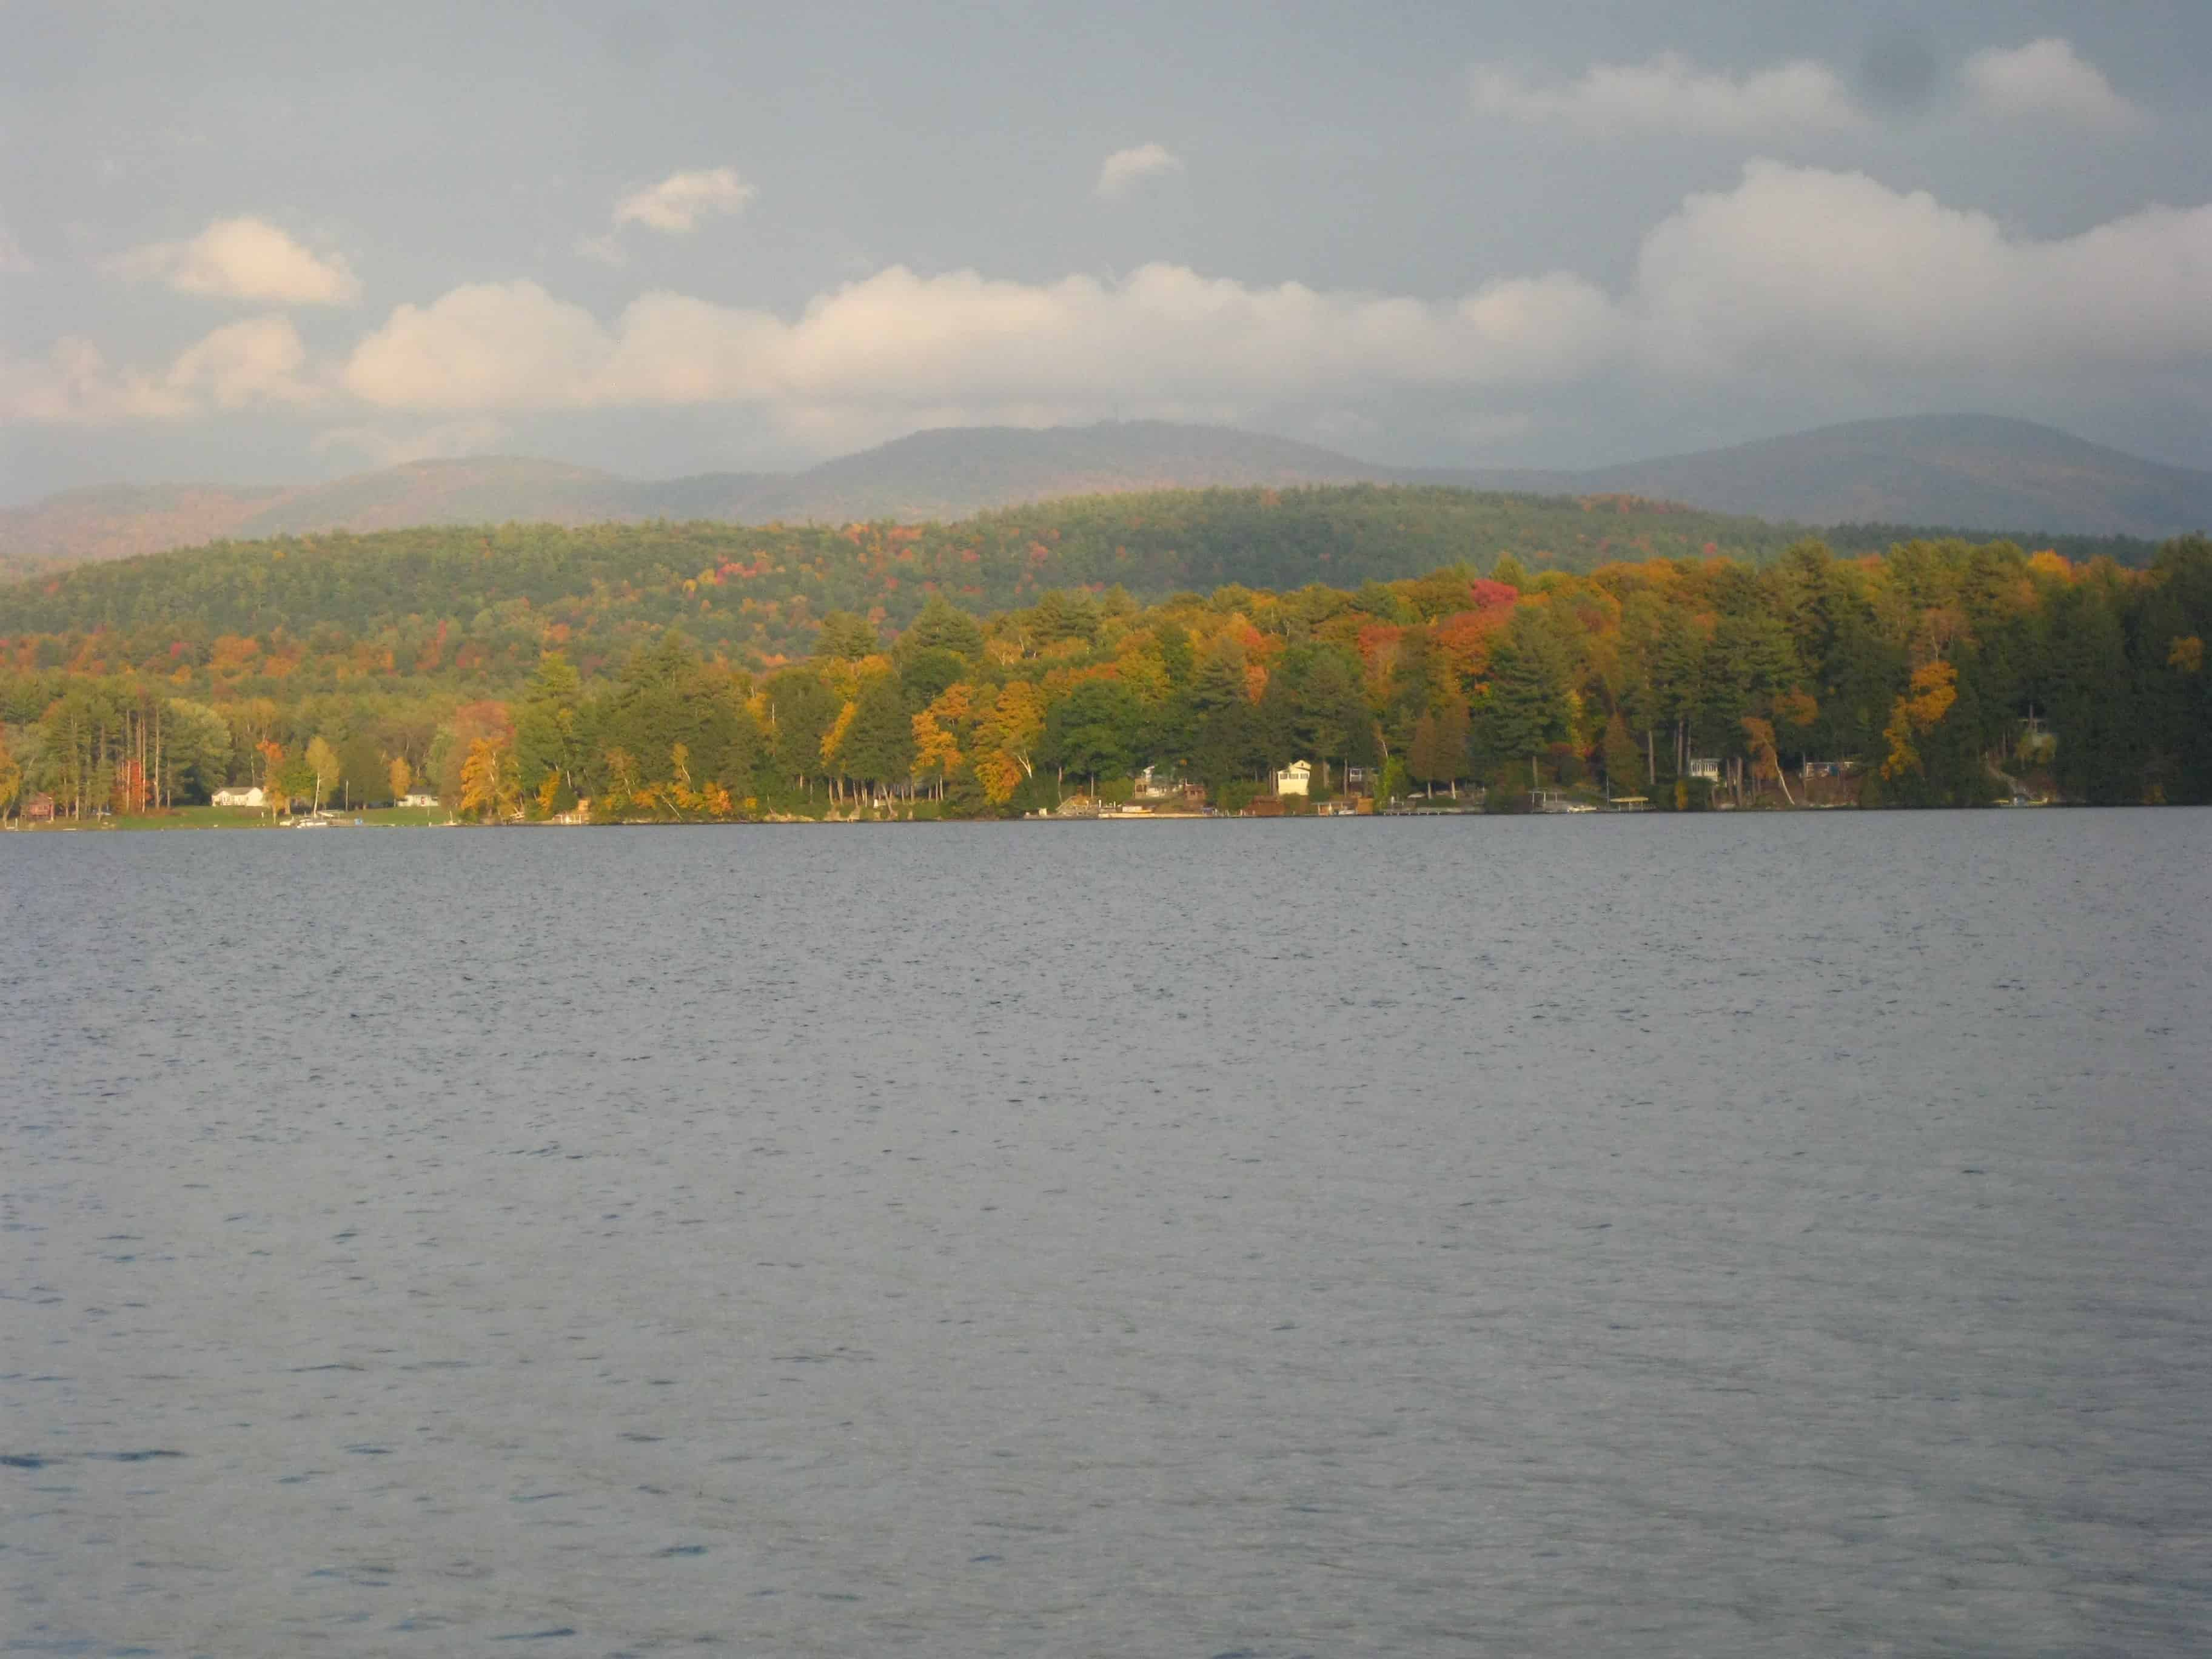 Woodard marine top 5 lakes in vermont blog - lake bomoseen